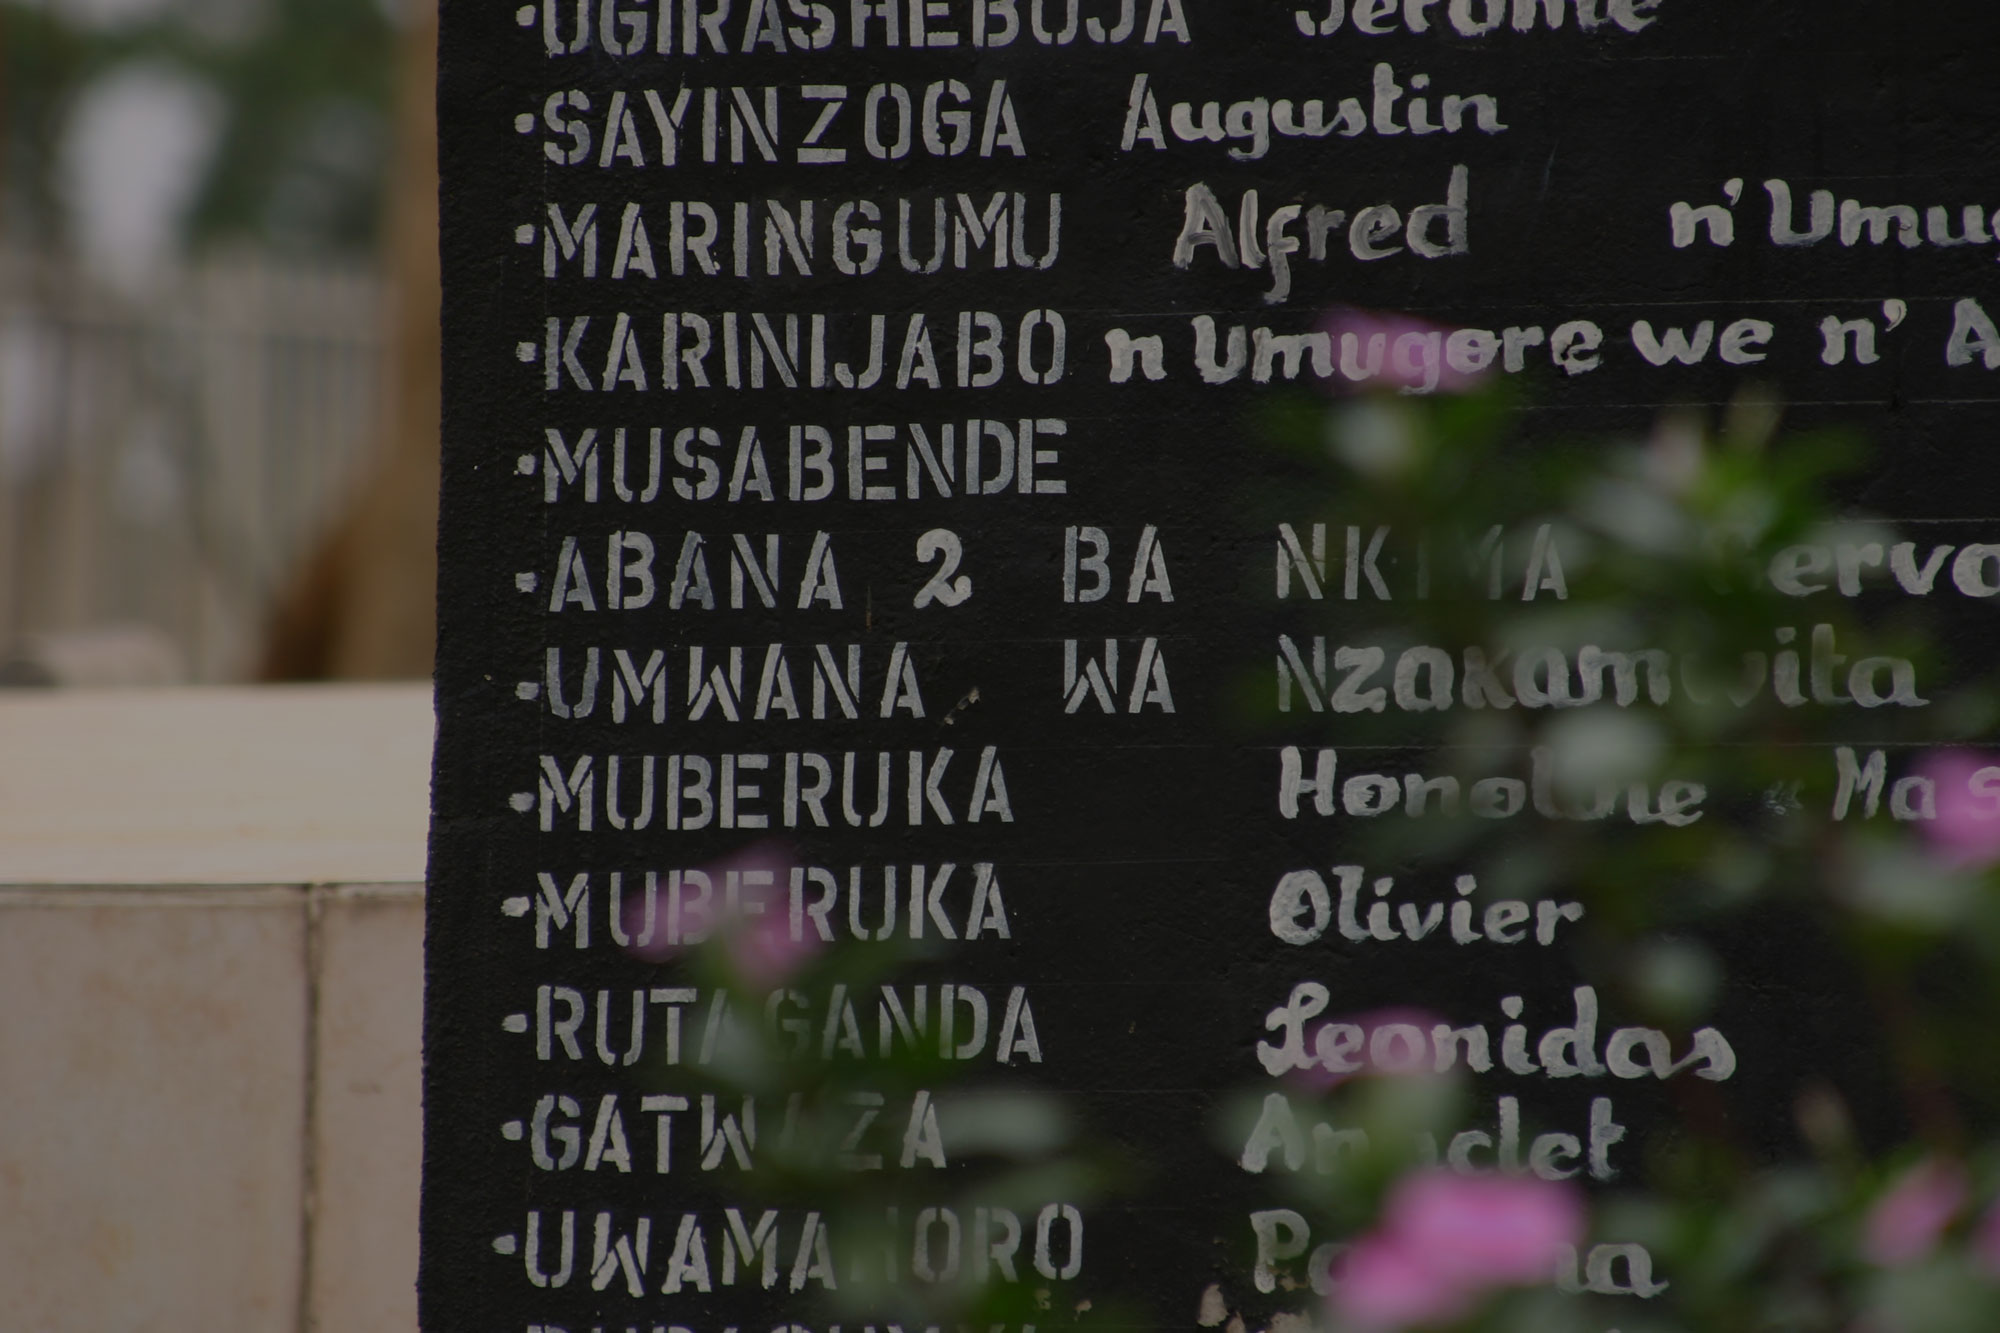 There is an opportunity to learn from the Genocide against Tutsi in Rwanda.